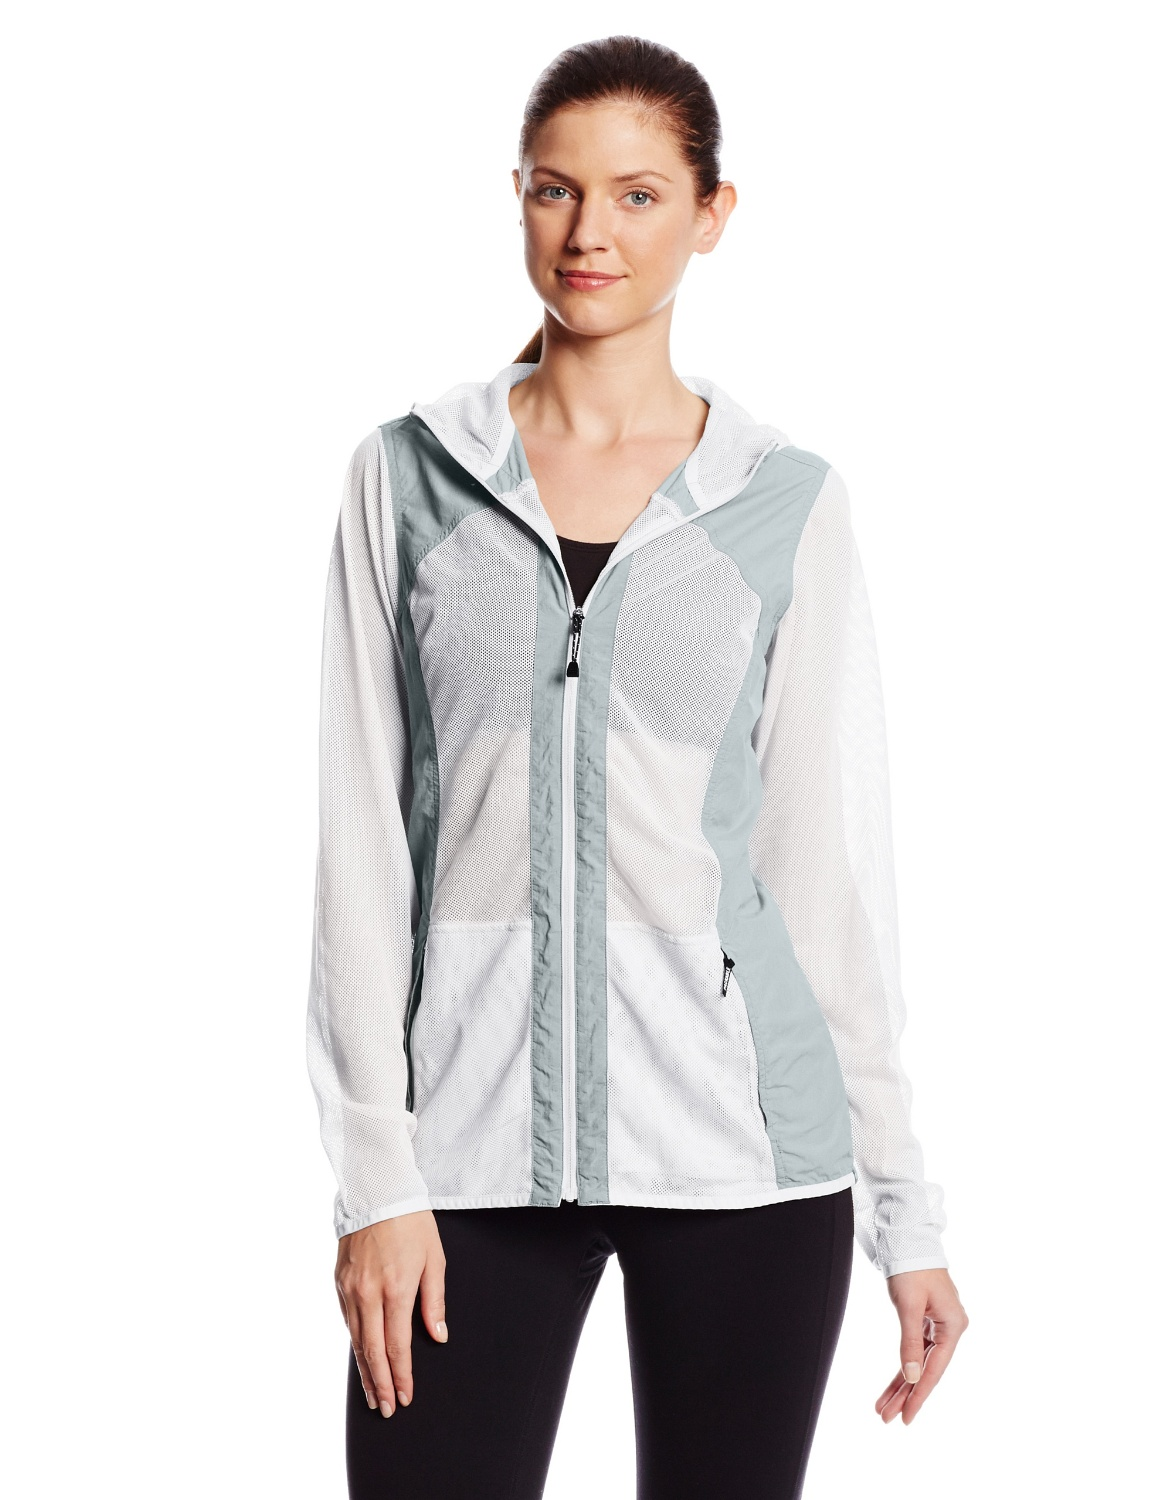 mosquito-repellent-clothes-womens-jacket